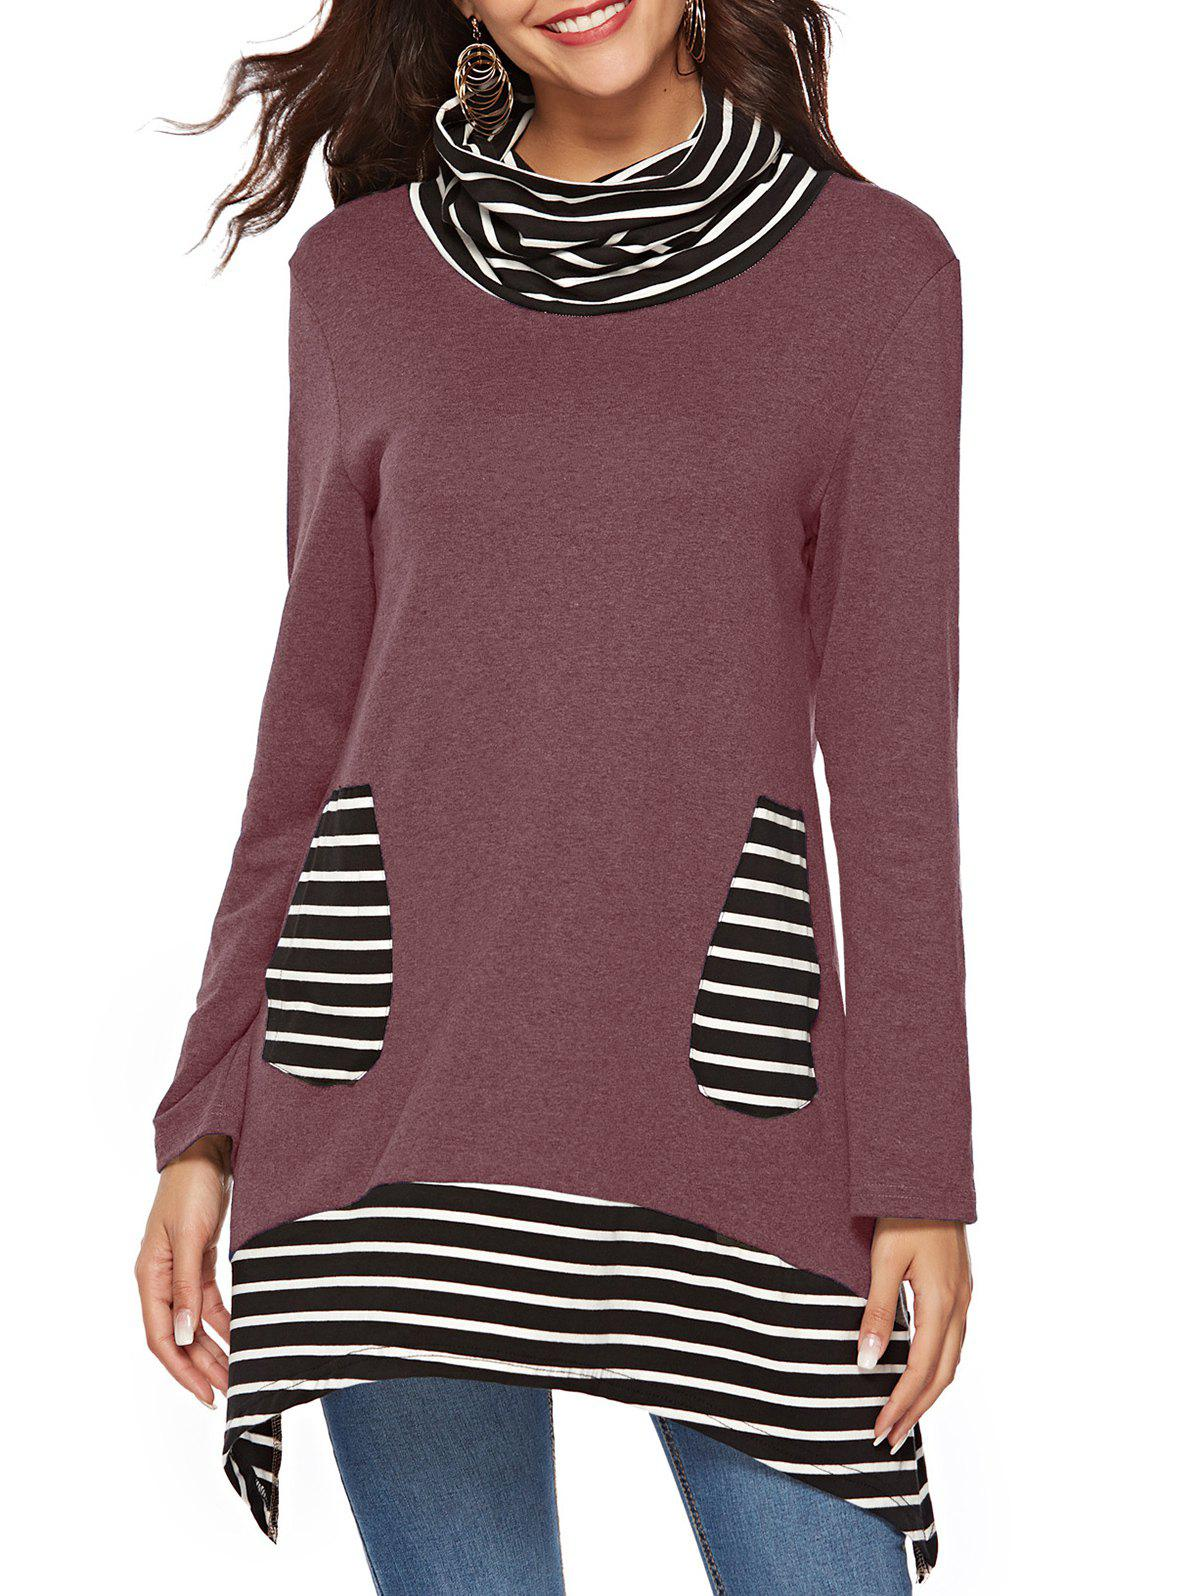 Cowl Neck Striped Pockets Asymmetric Tee - TULIP PINK M